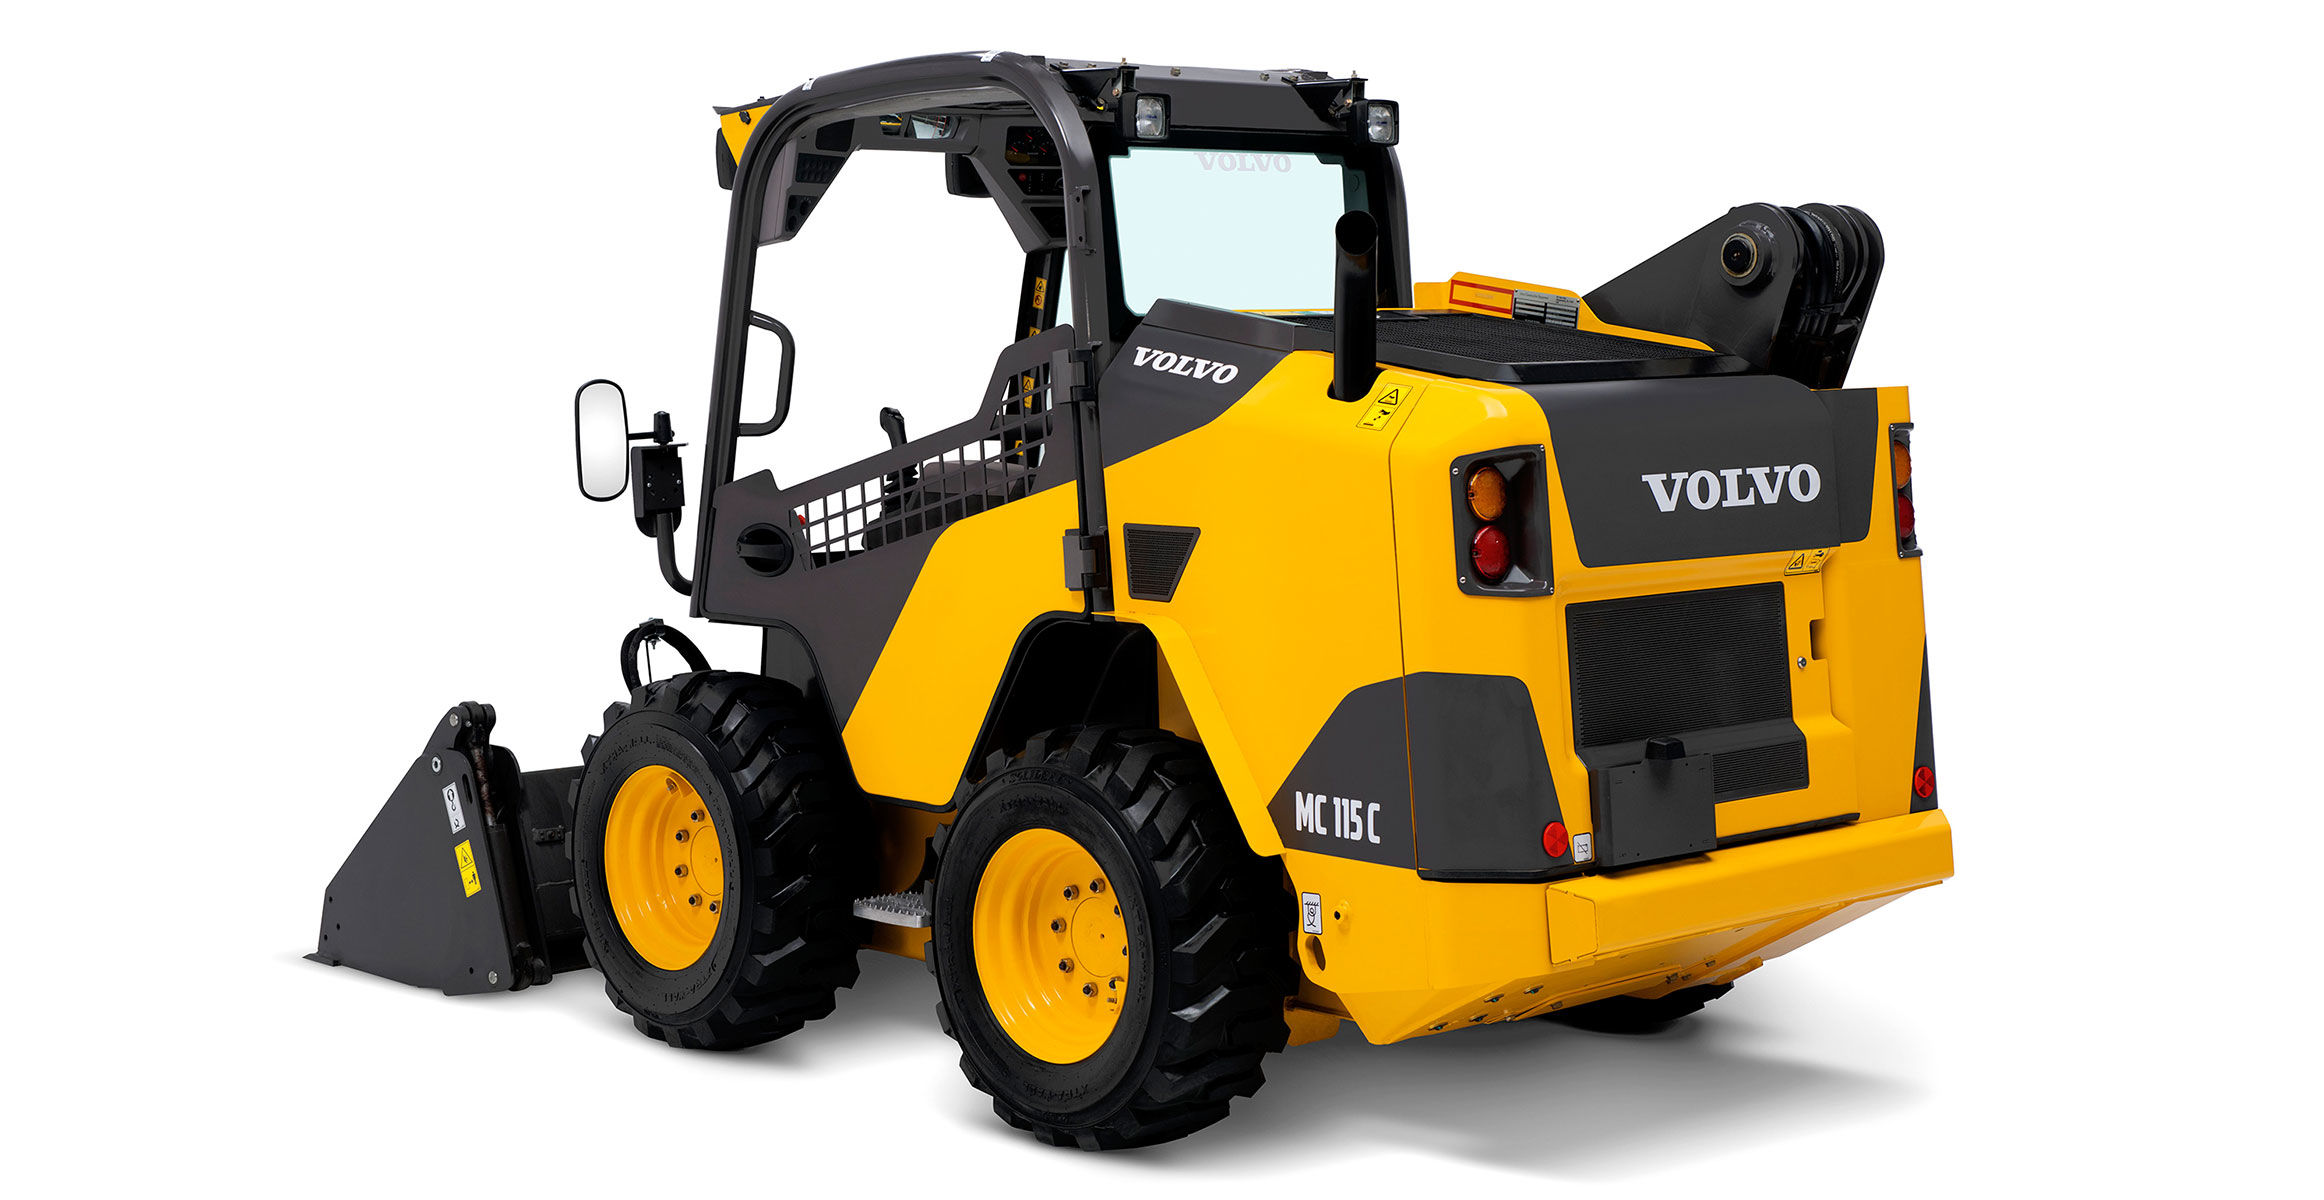 Volvo S Up With Updated C Series Skid Steer And Compact Track Loaders Construction Equipment